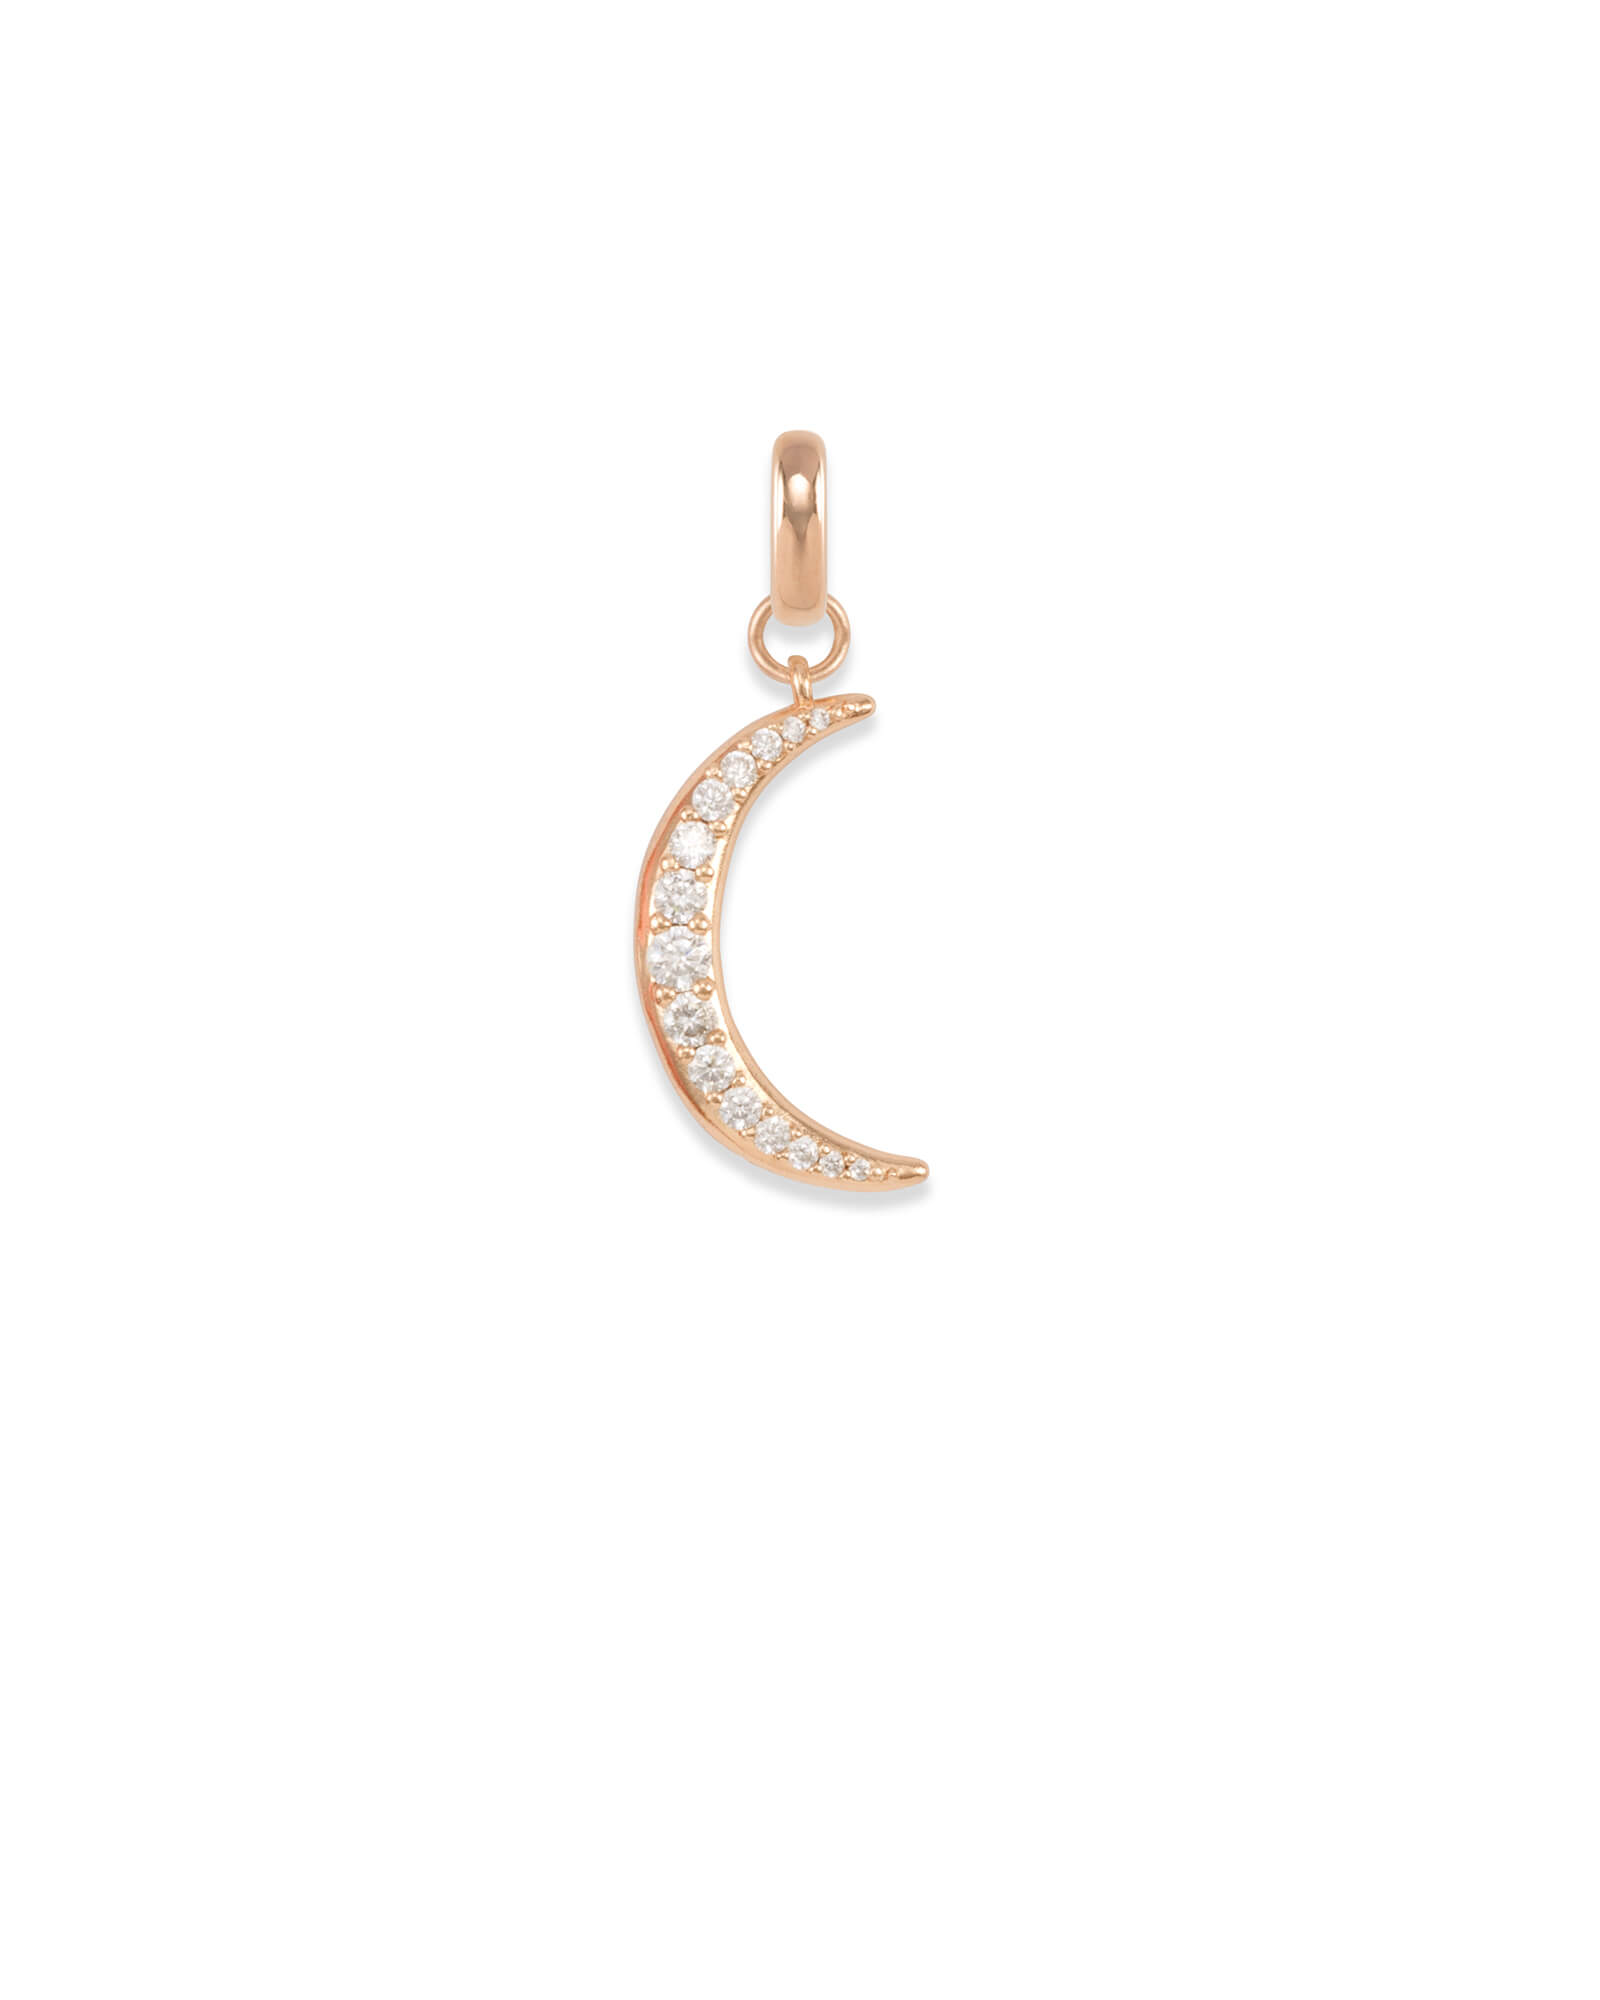 Small Crescent Moon Charm in Rose Gold